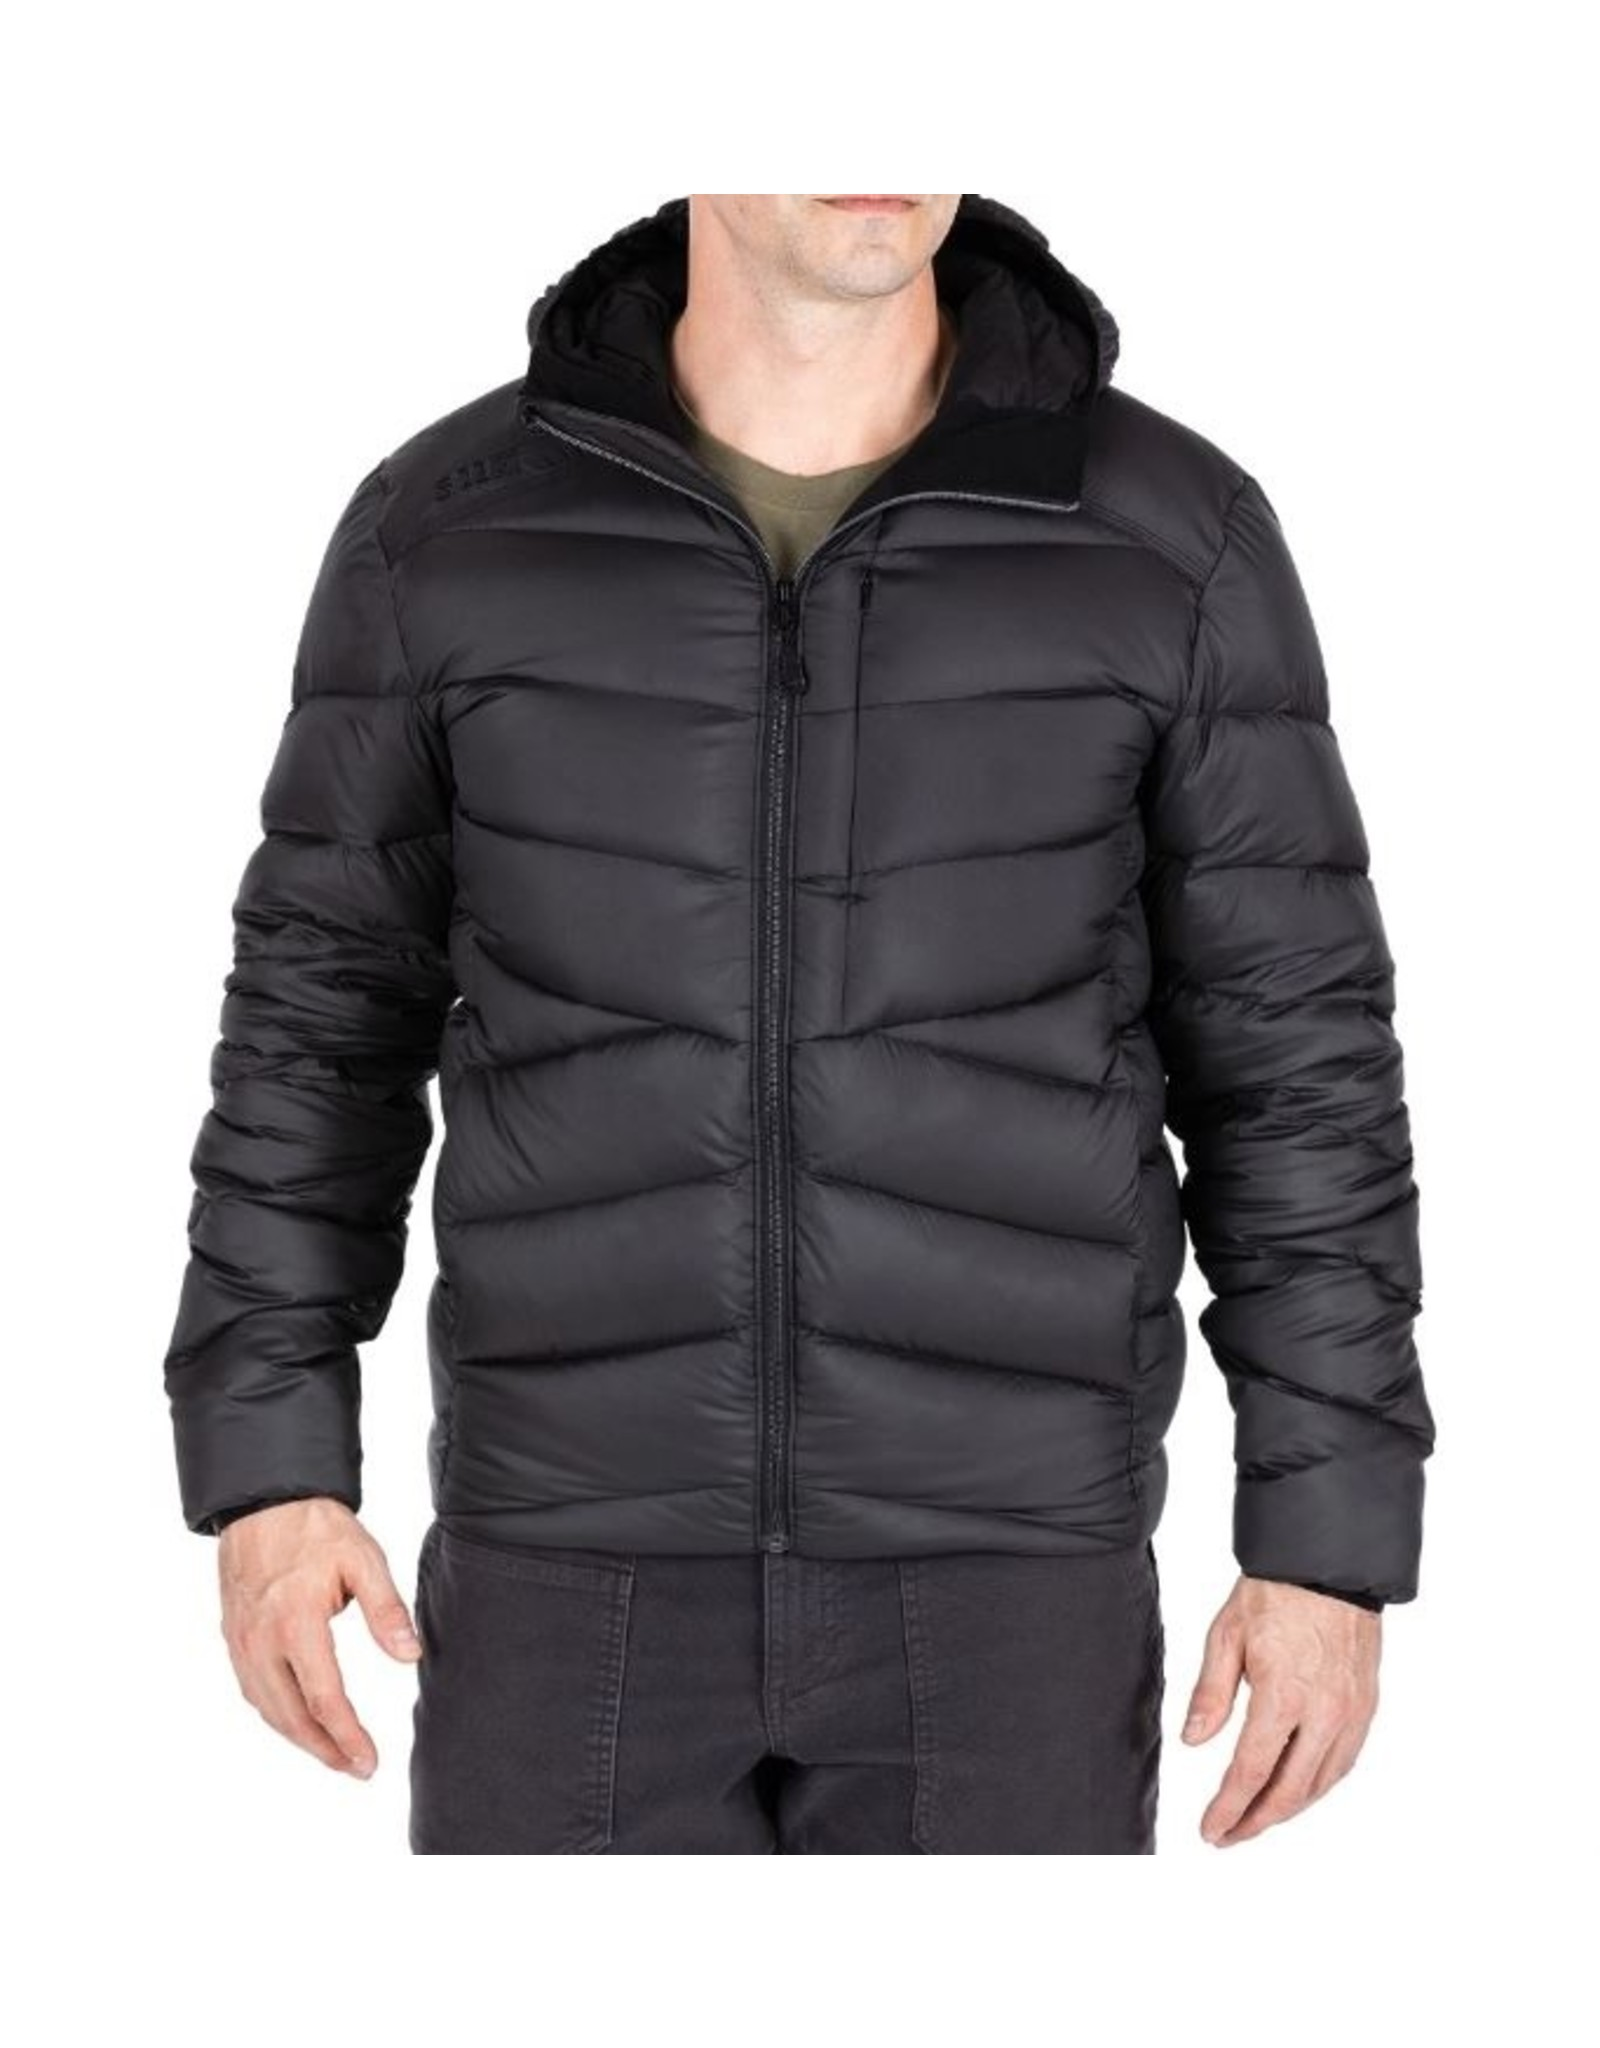 5.11 ACADIA DOWN JACKET - ONLINE ONLY